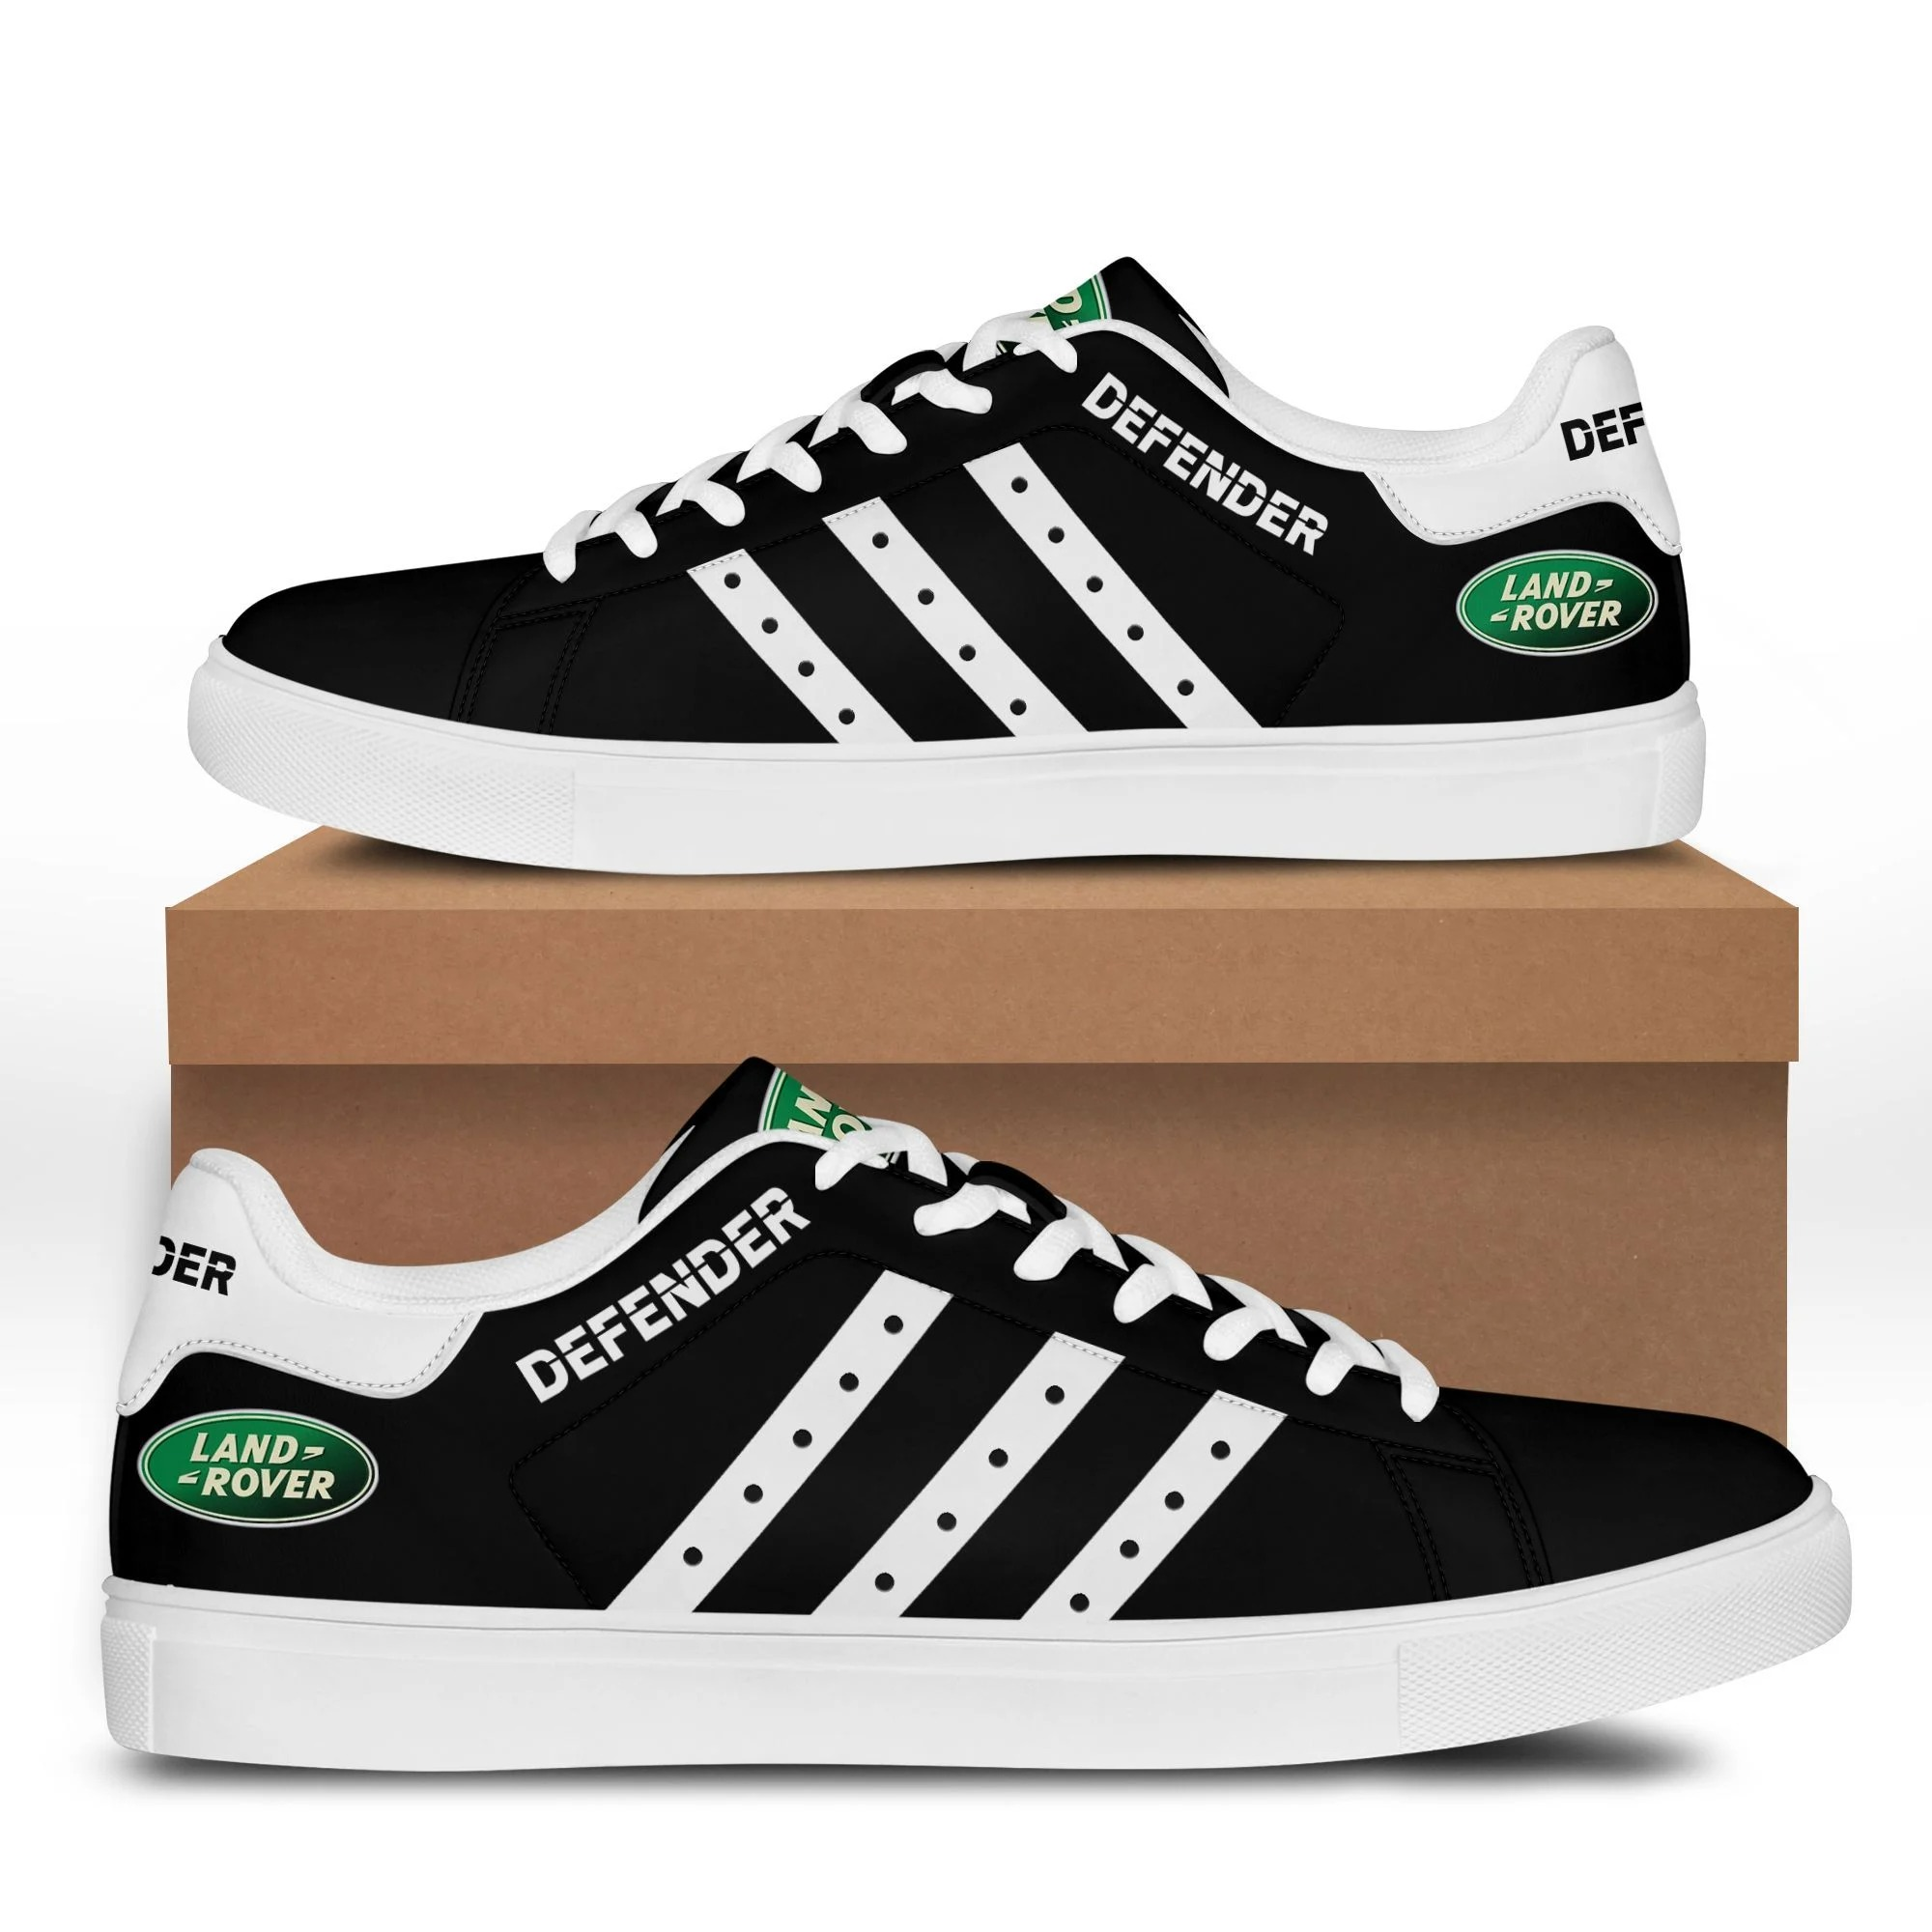 Defender stan smith low top shoes 2